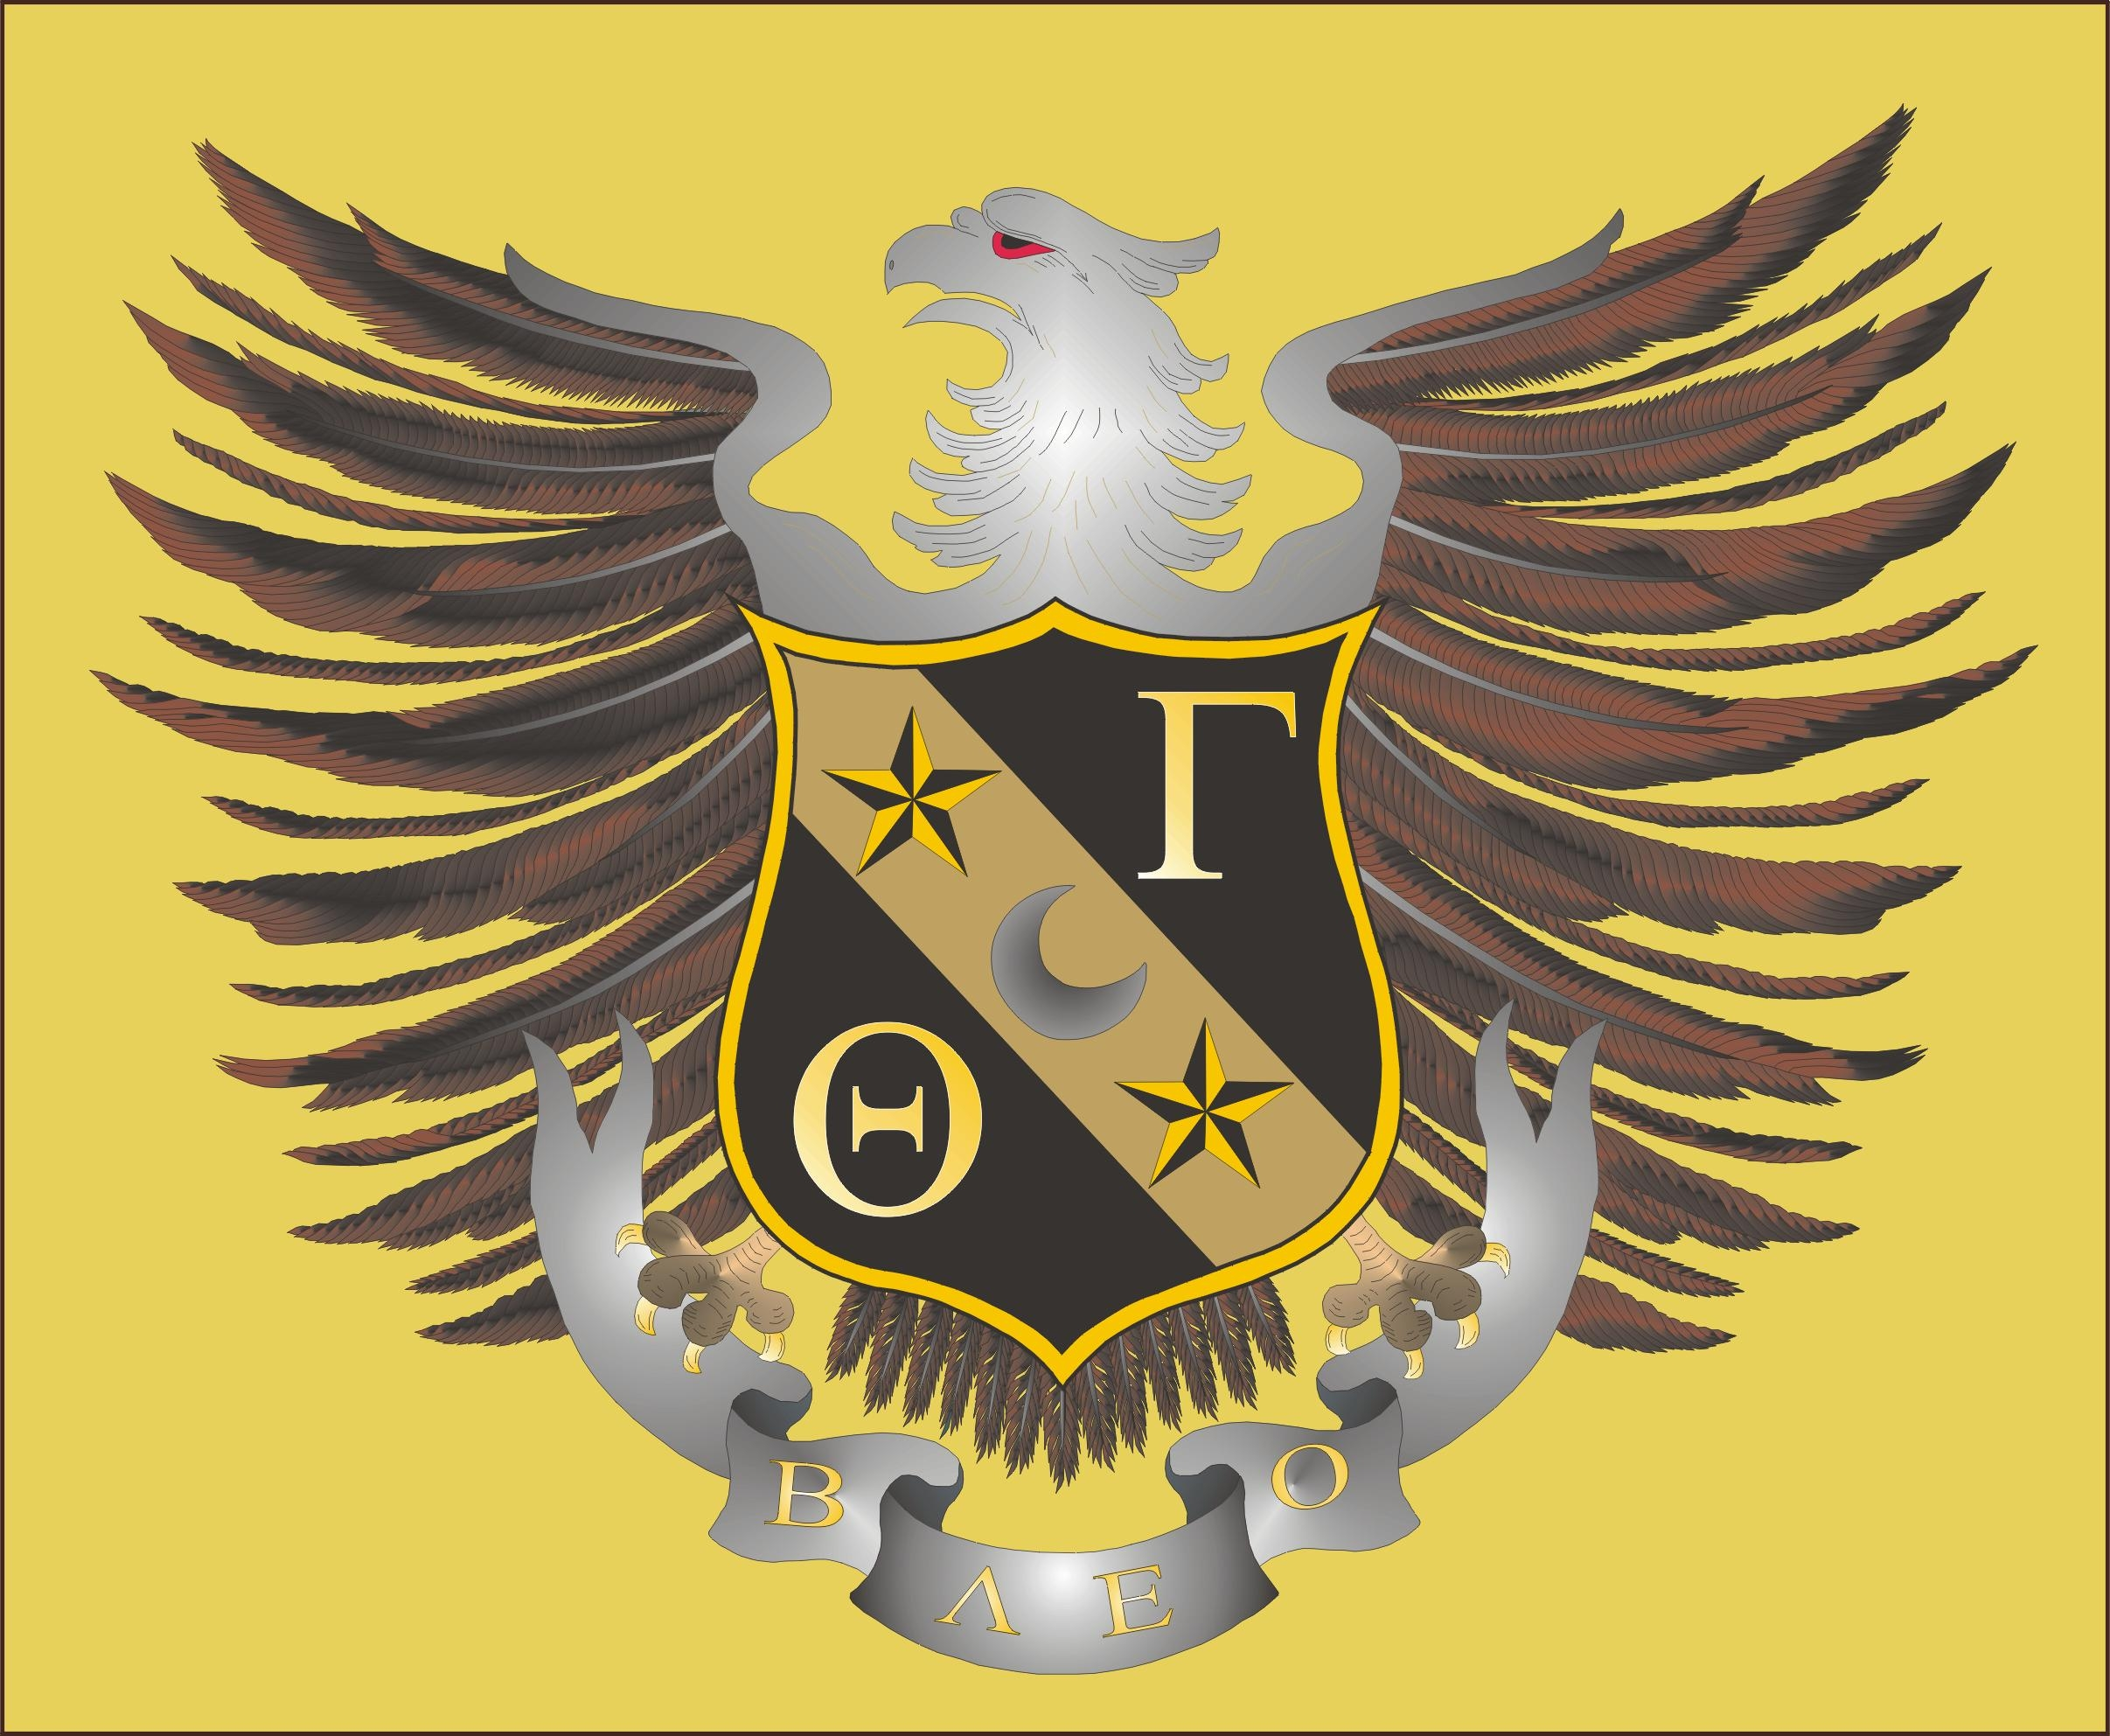 TG Coat of Arms